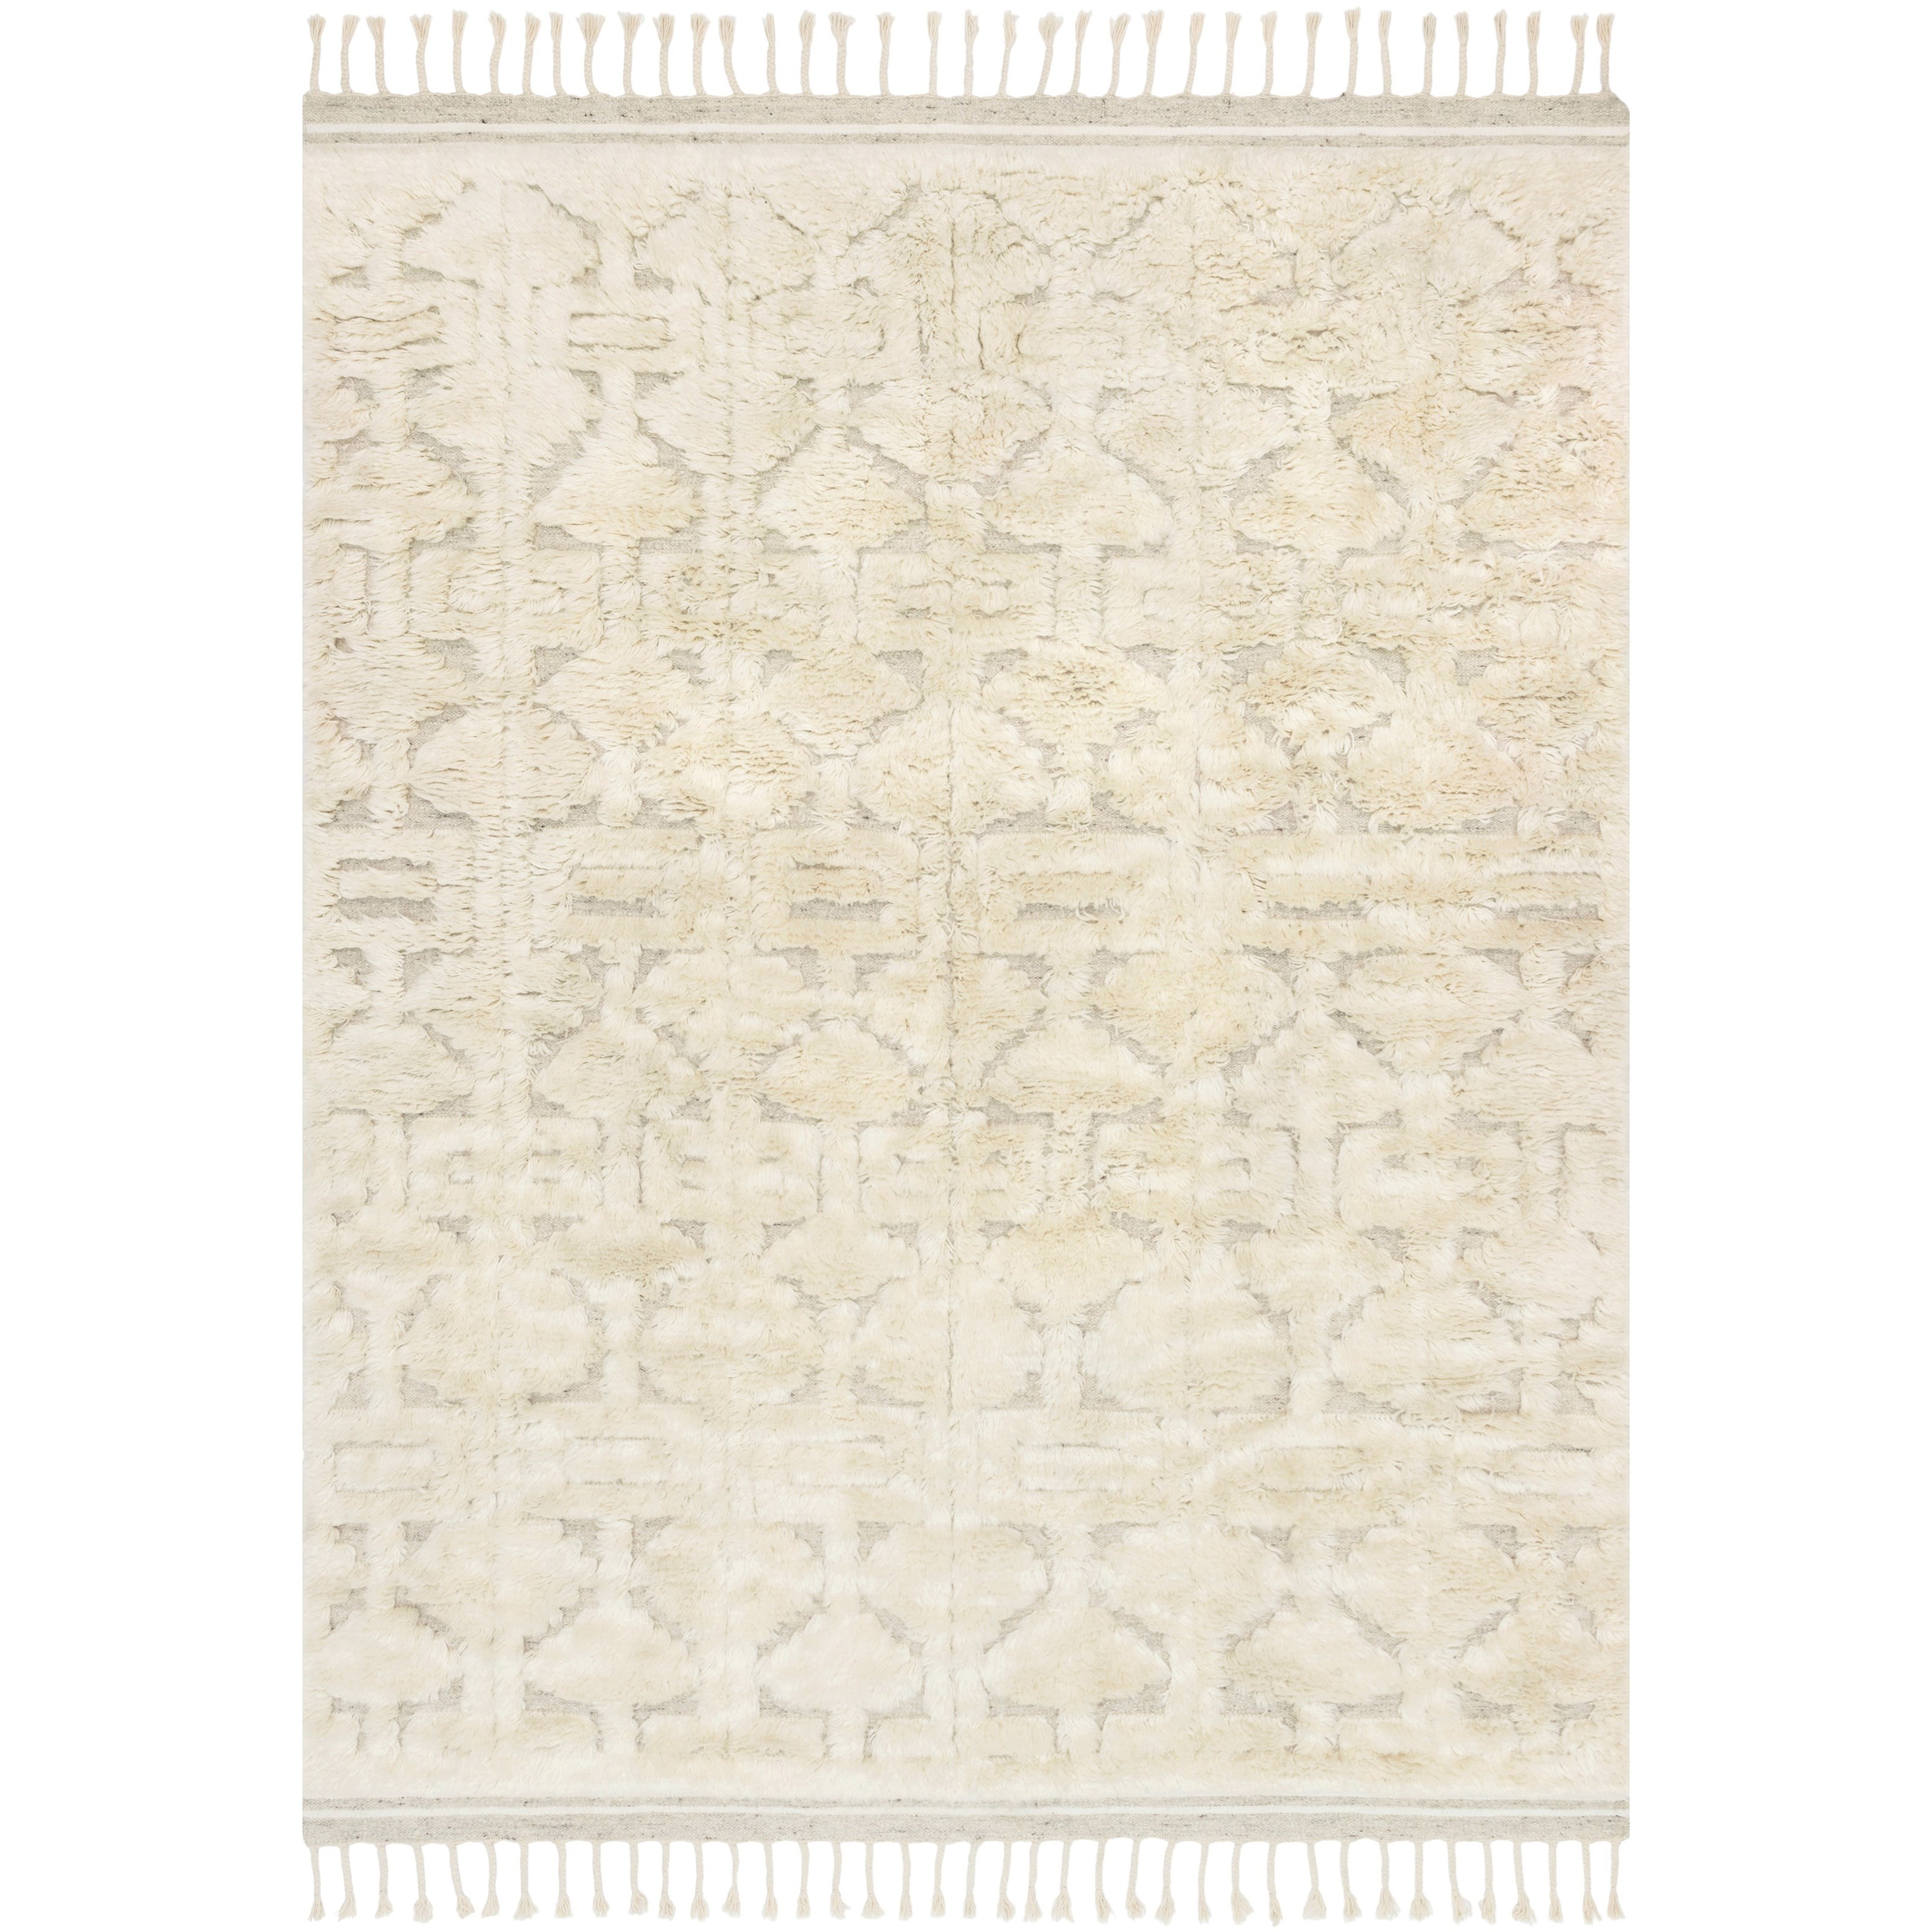 """Hygge 4'0"""" x 6'0"""" Oatmeal / Ivory Rug by Loloi Rugs at Virginia Furniture Market"""